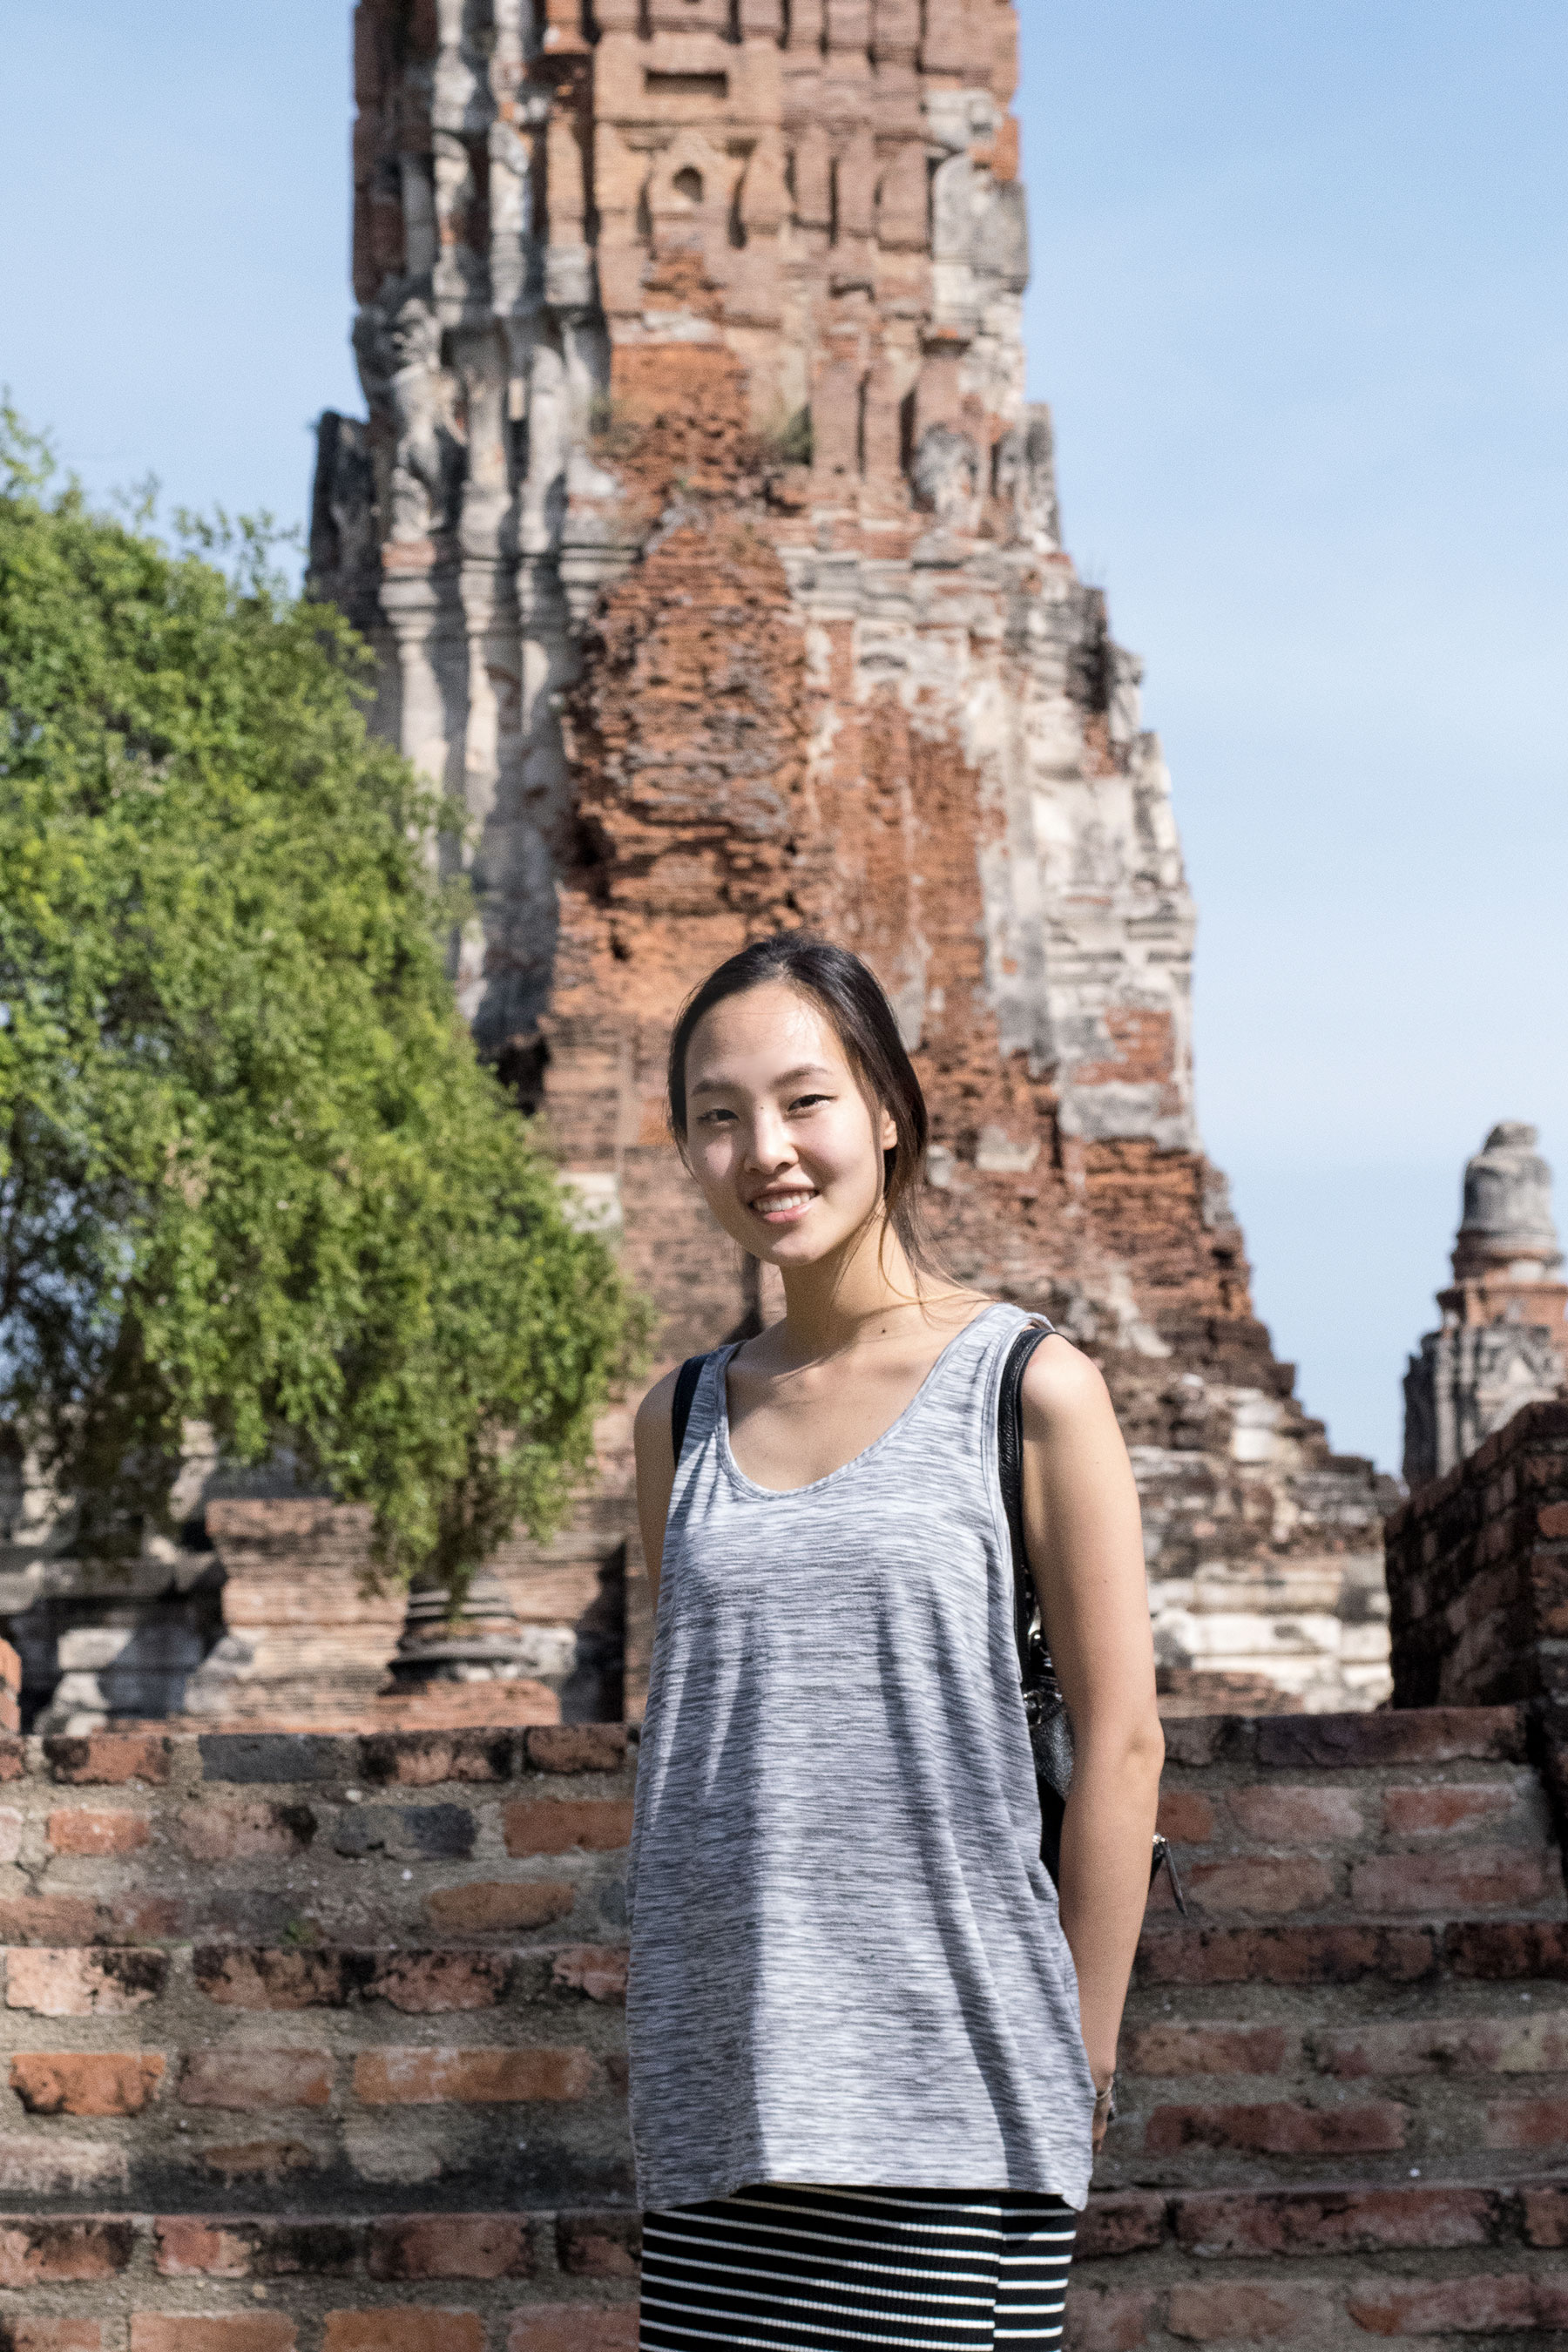 DRESS CODE:  I was wearing a crop top under the tank but I had to cover up (for modesty) in order to see all the temples.